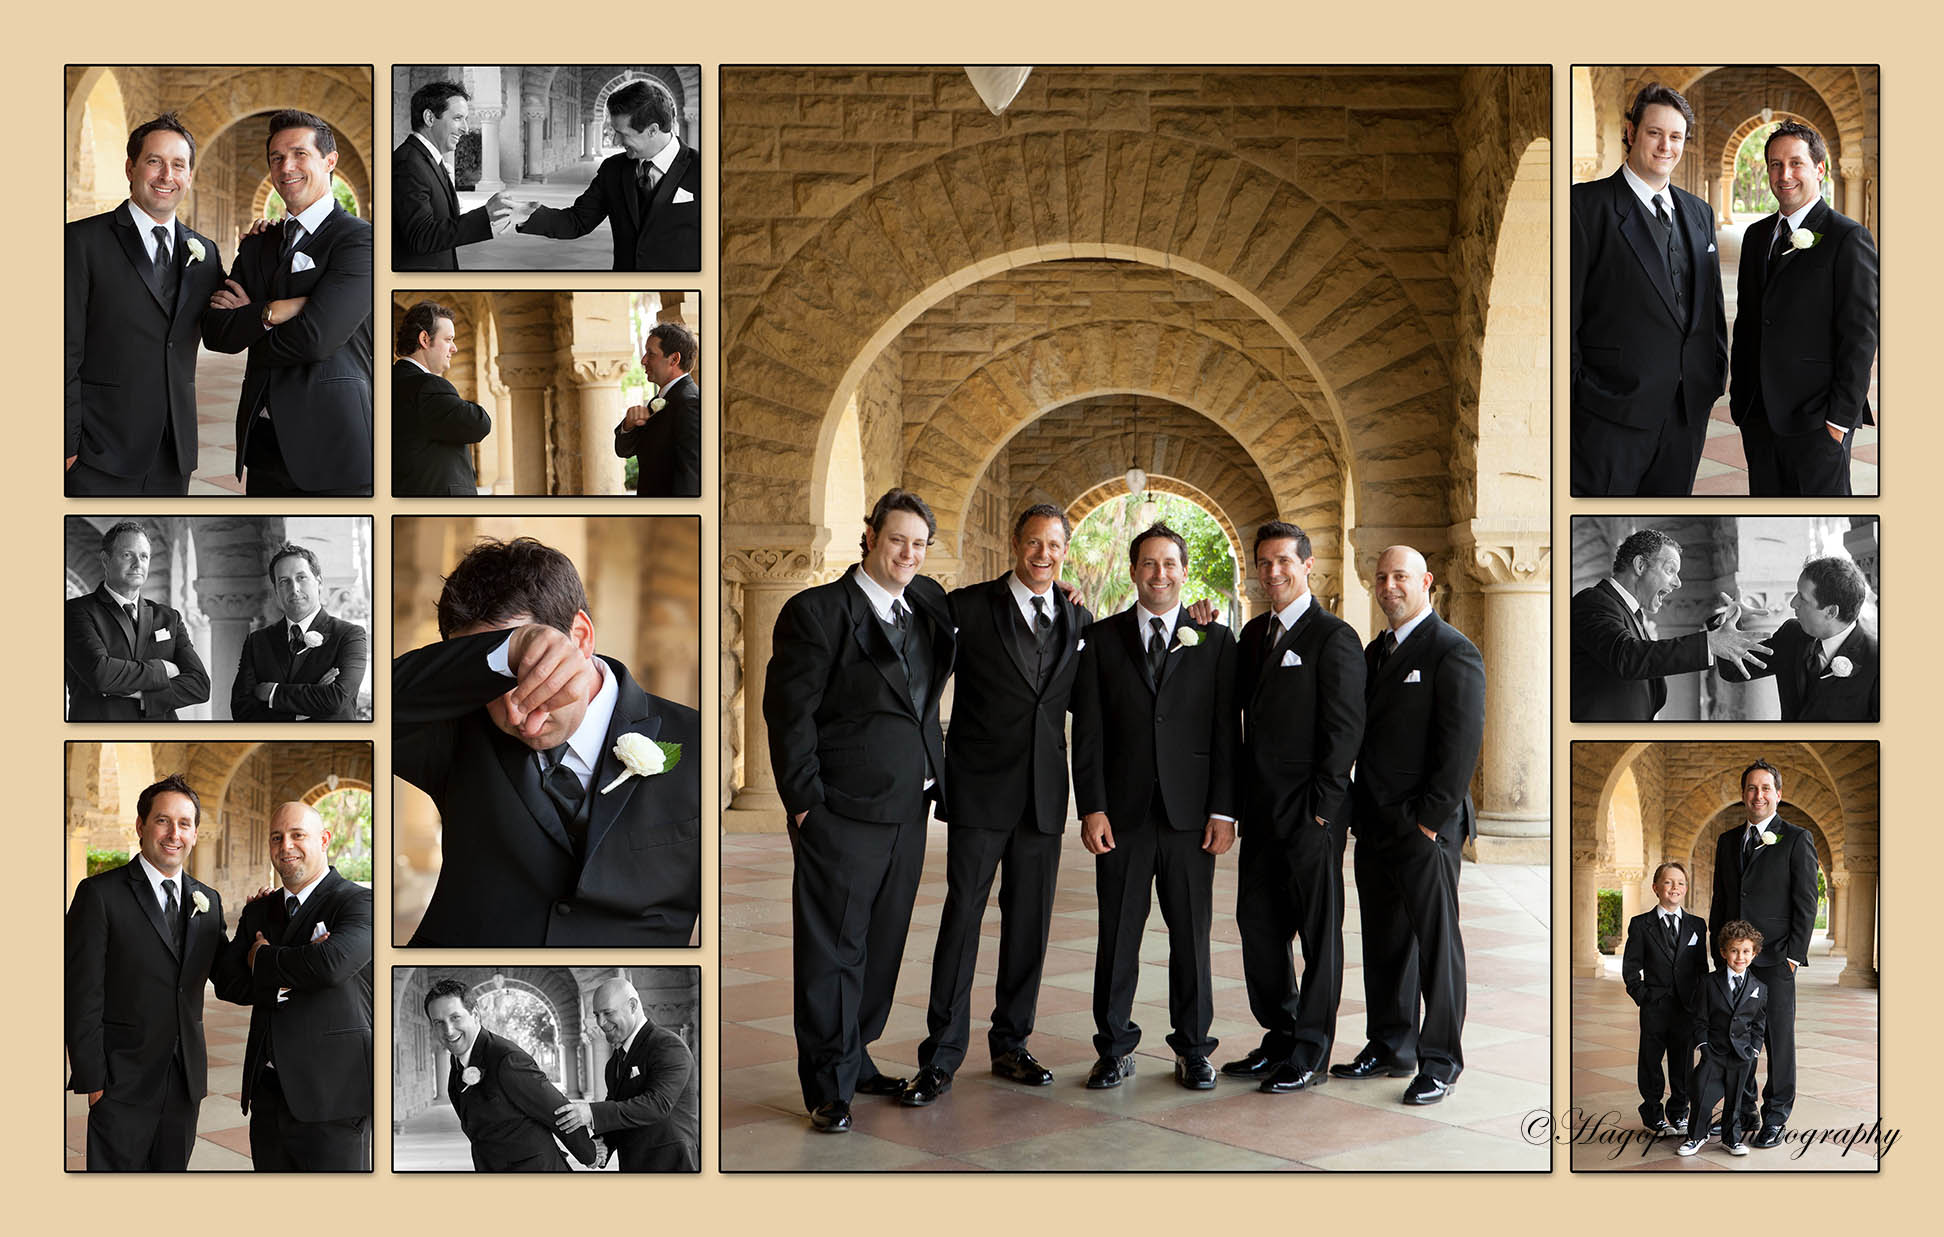 composite magazine style album page of the groom with his groomsmen